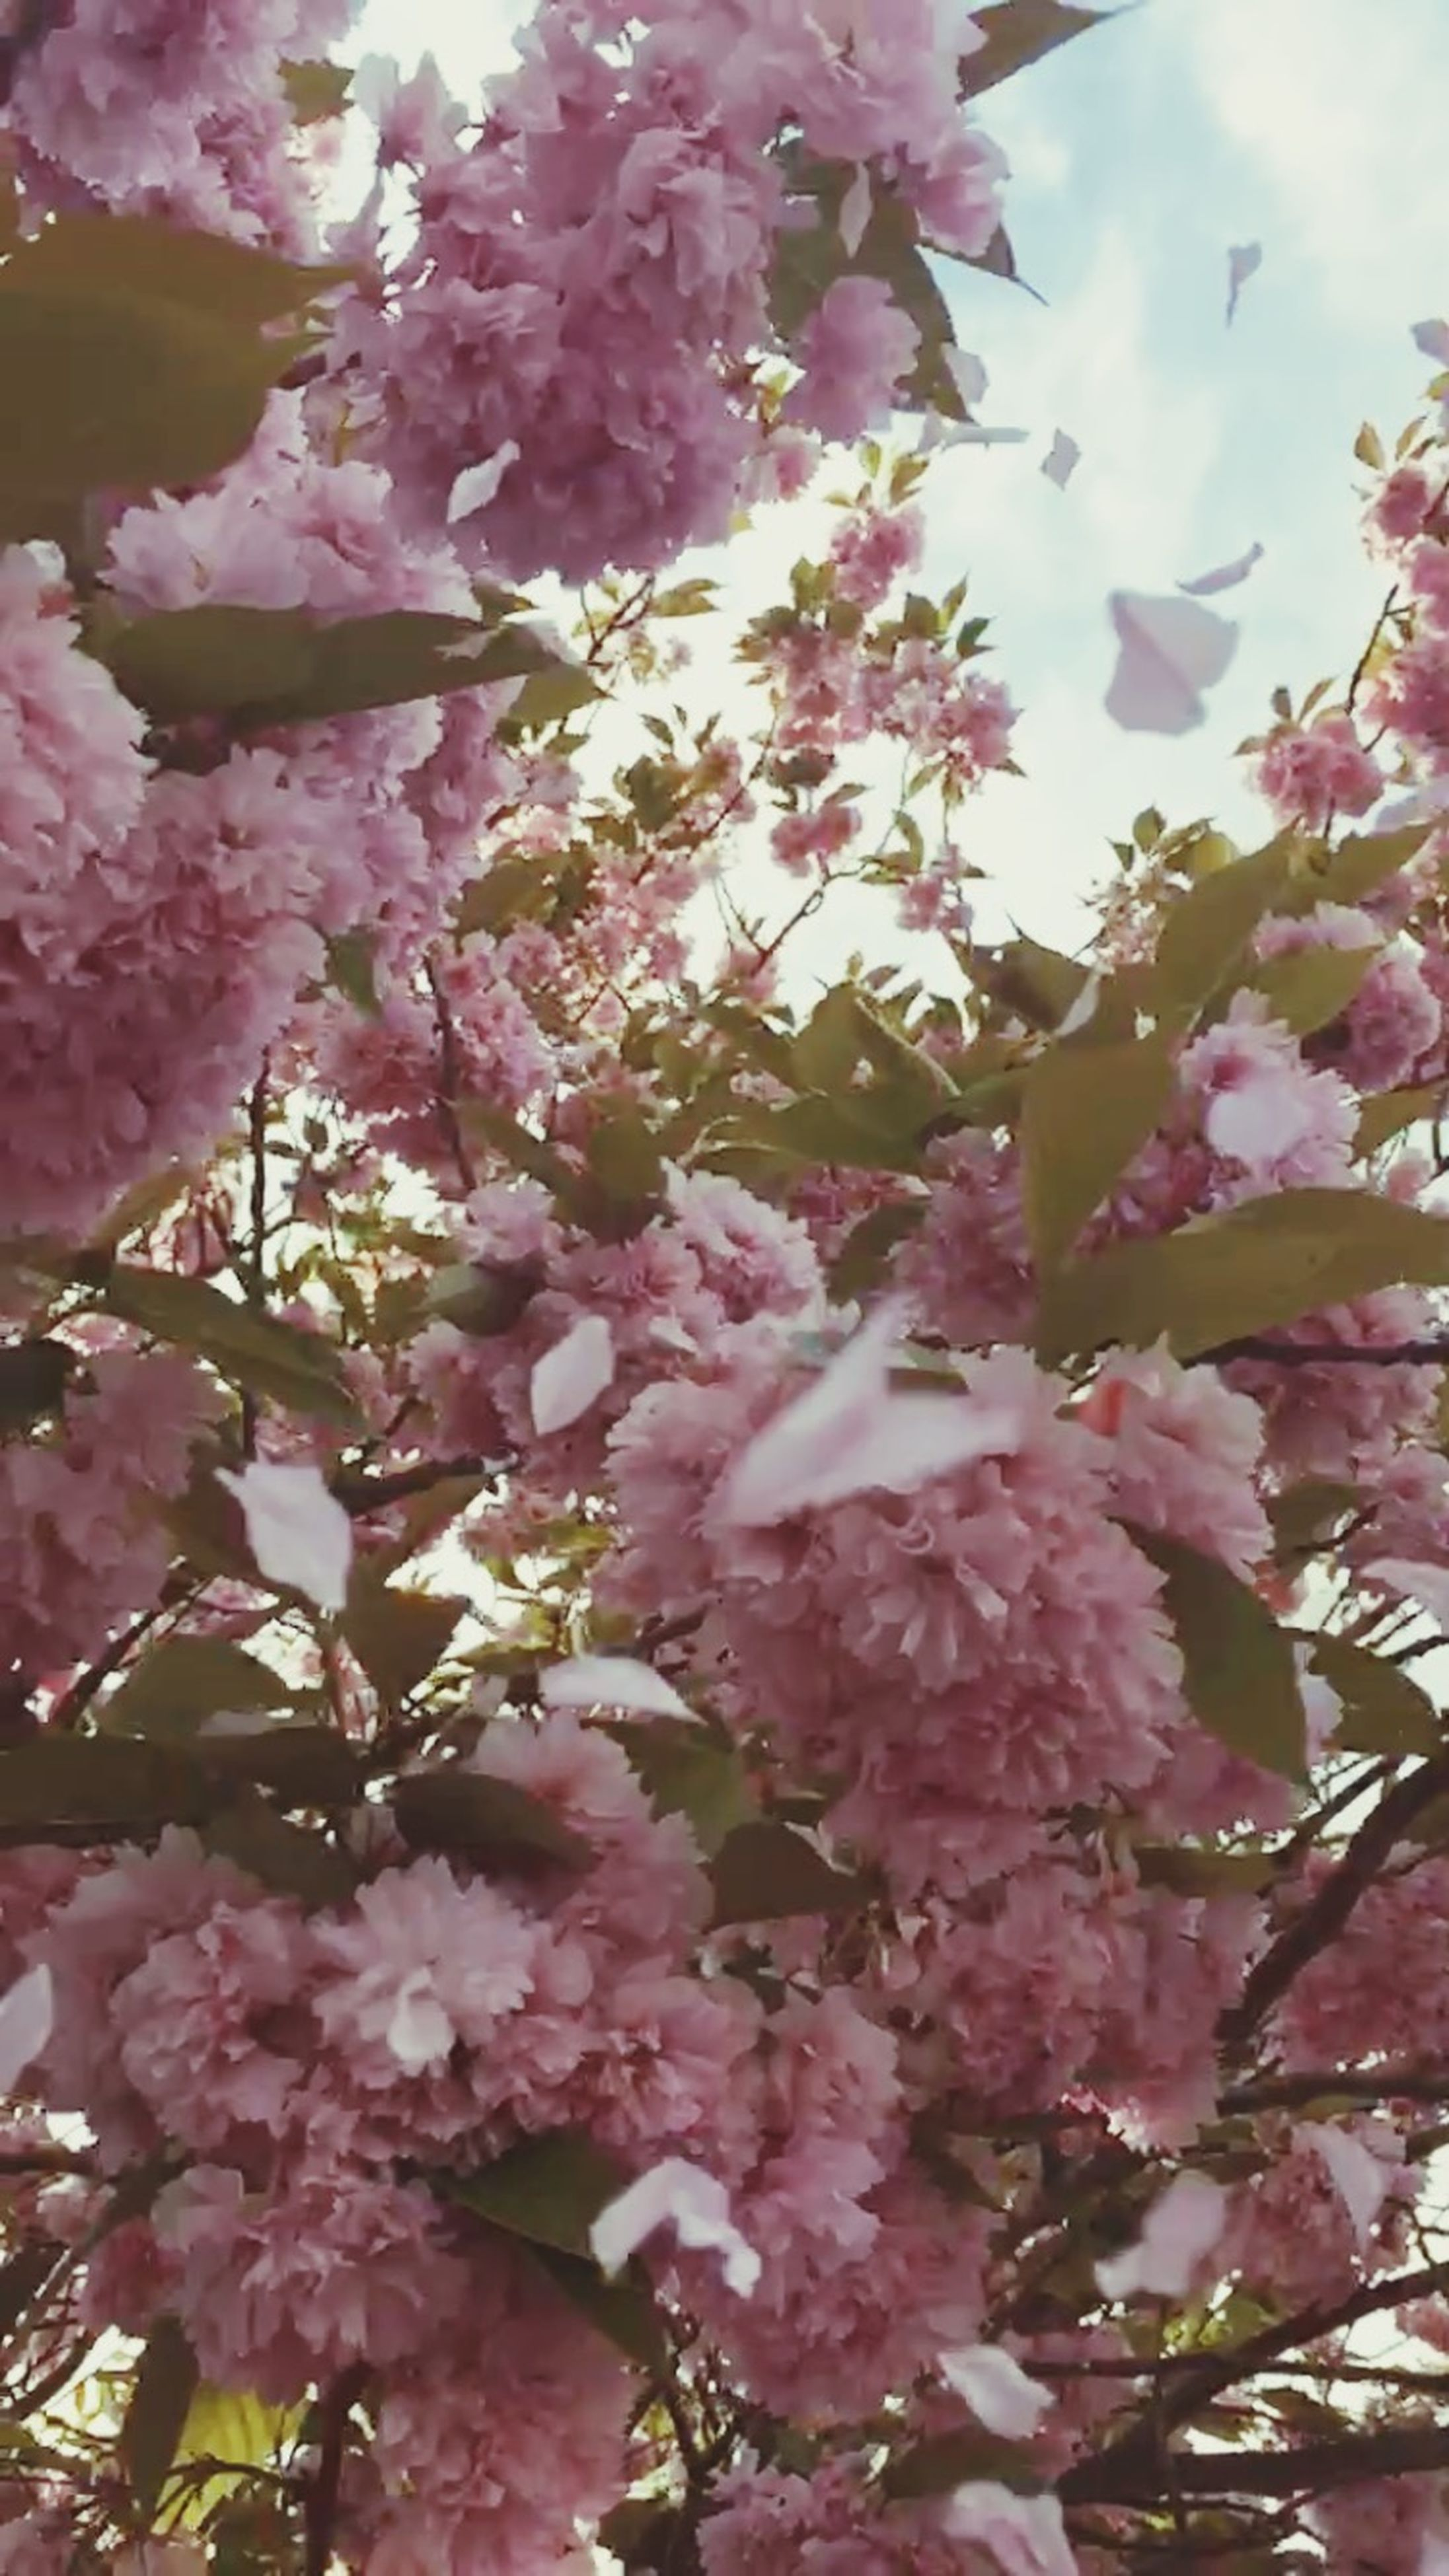 flower, pink color, freshness, growth, low angle view, branch, beauty in nature, fragility, tree, nature, blossom, pink, blooming, outdoors, day, in bloom, sky, cherry blossom, springtime, backgrounds